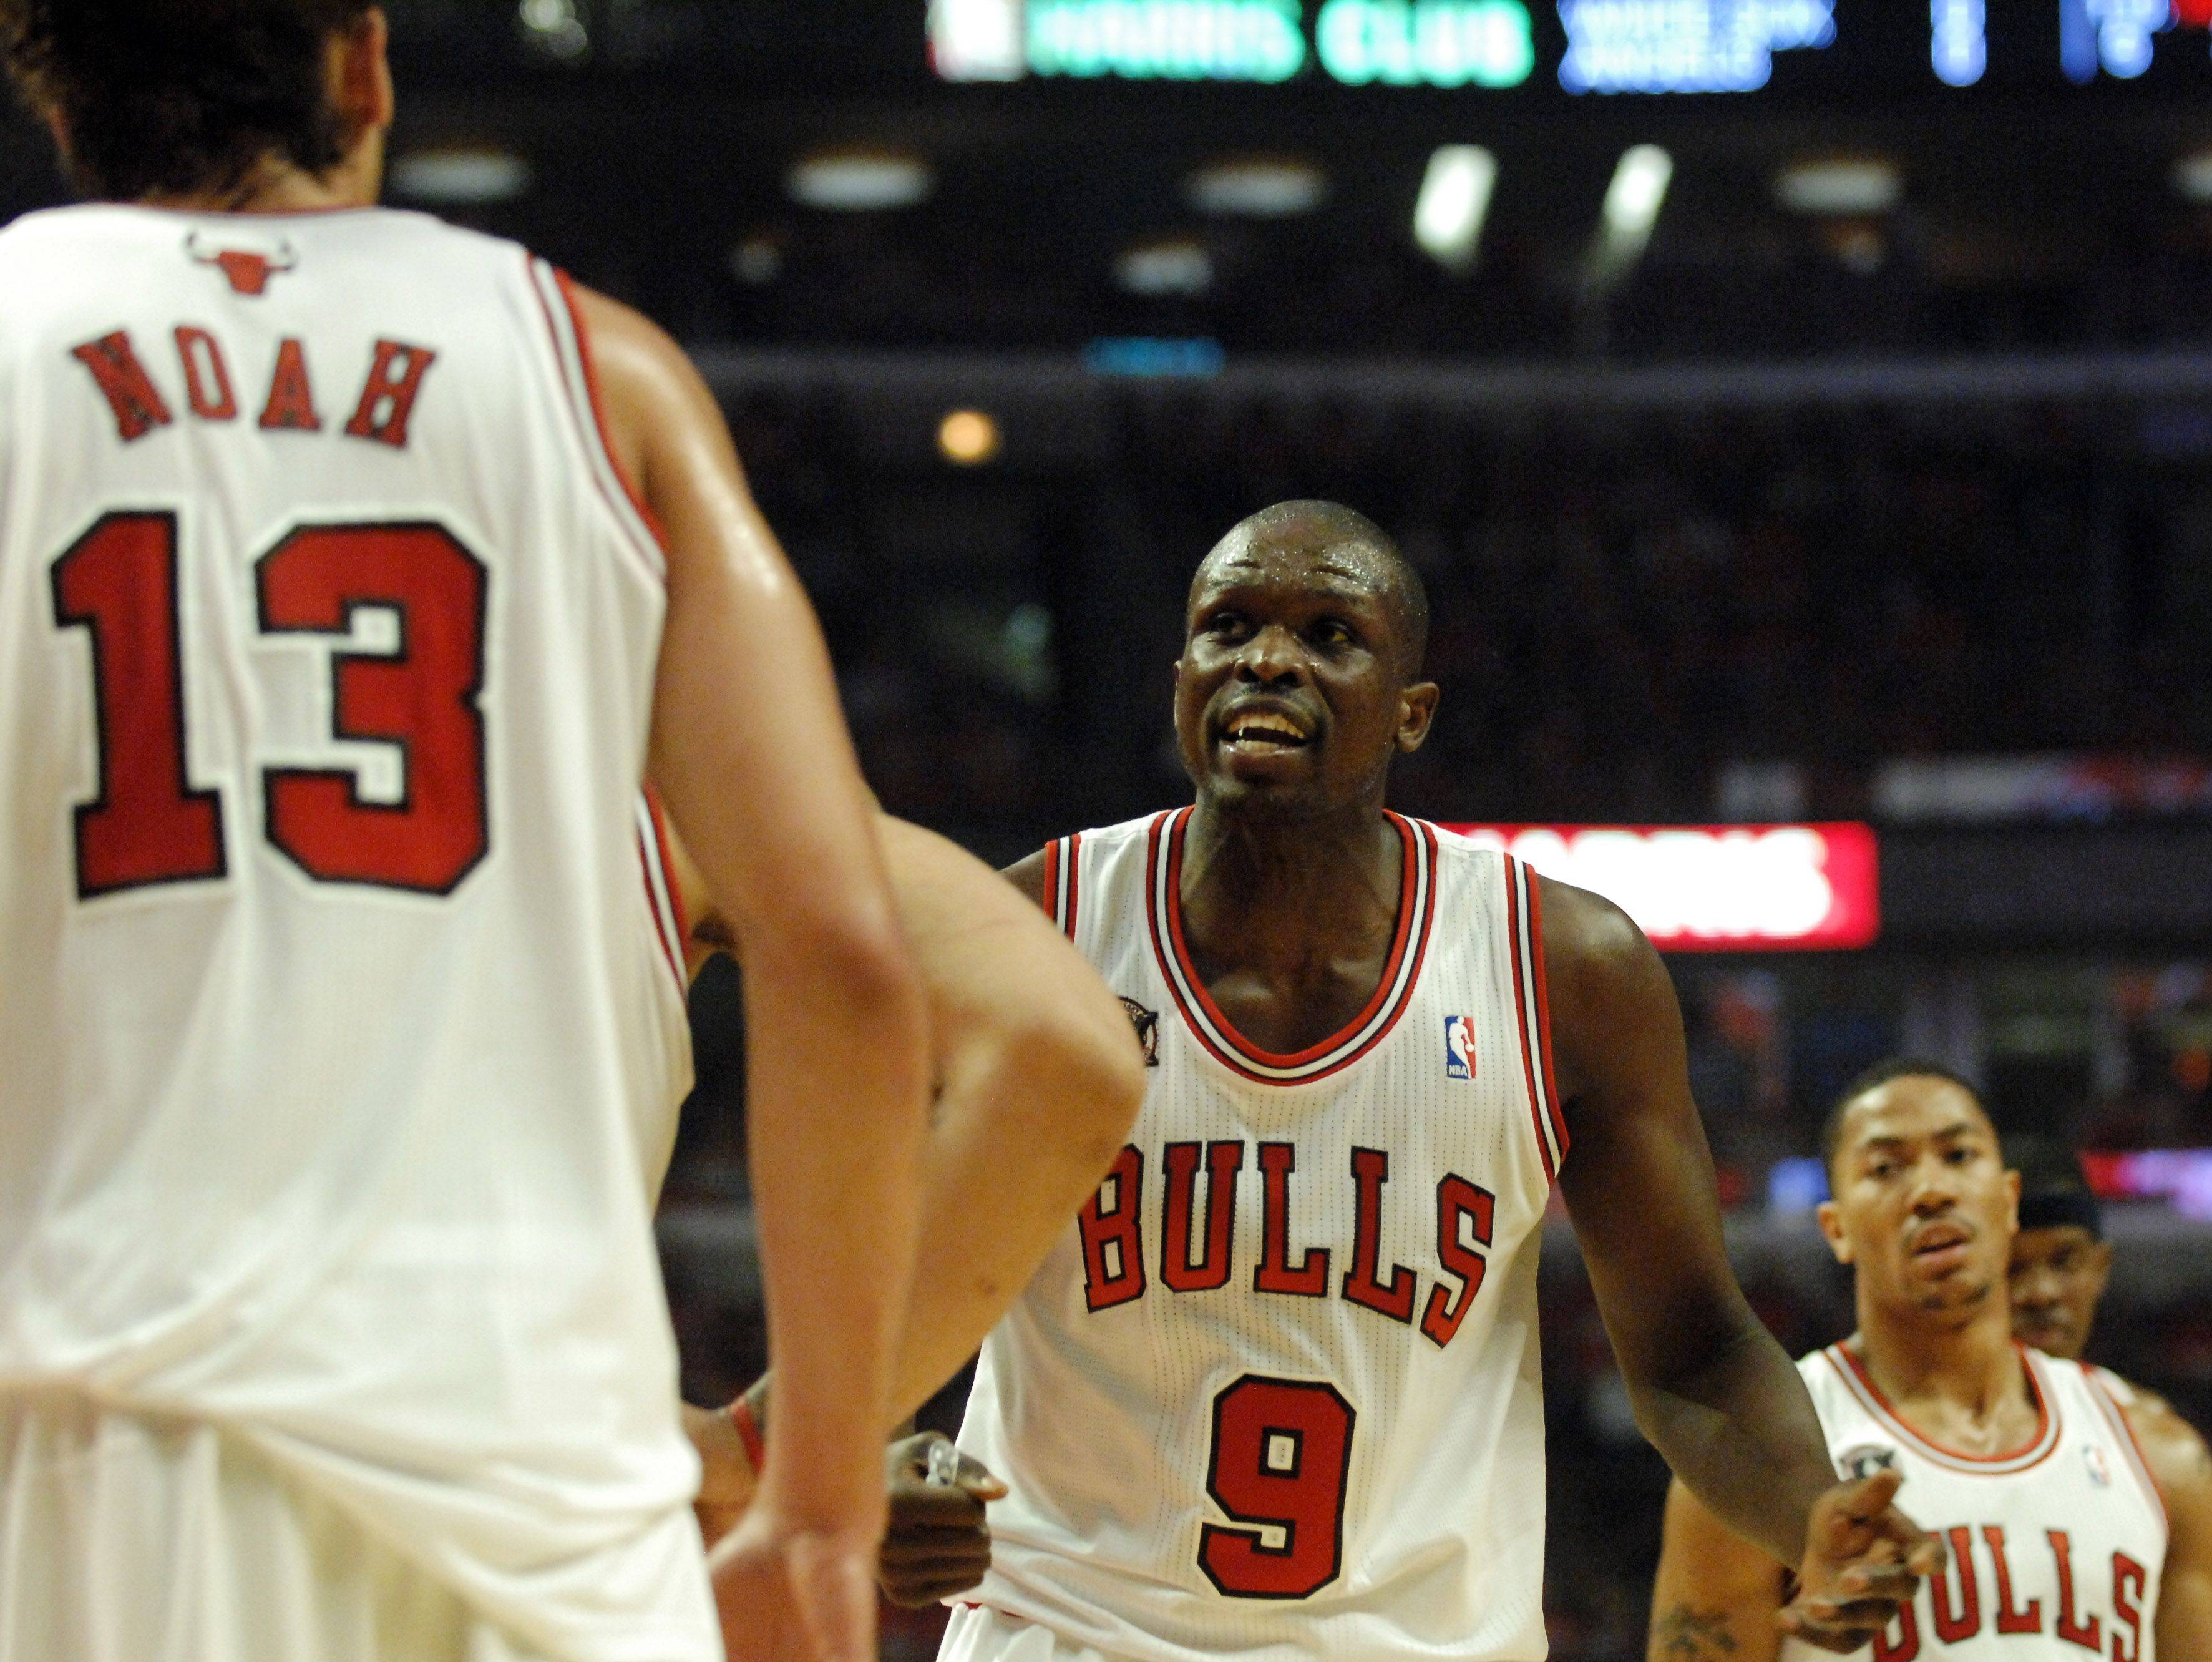 Luol Deng urges his teammates to stiffen up on defense in the first quarter in Chicago Tuesday.